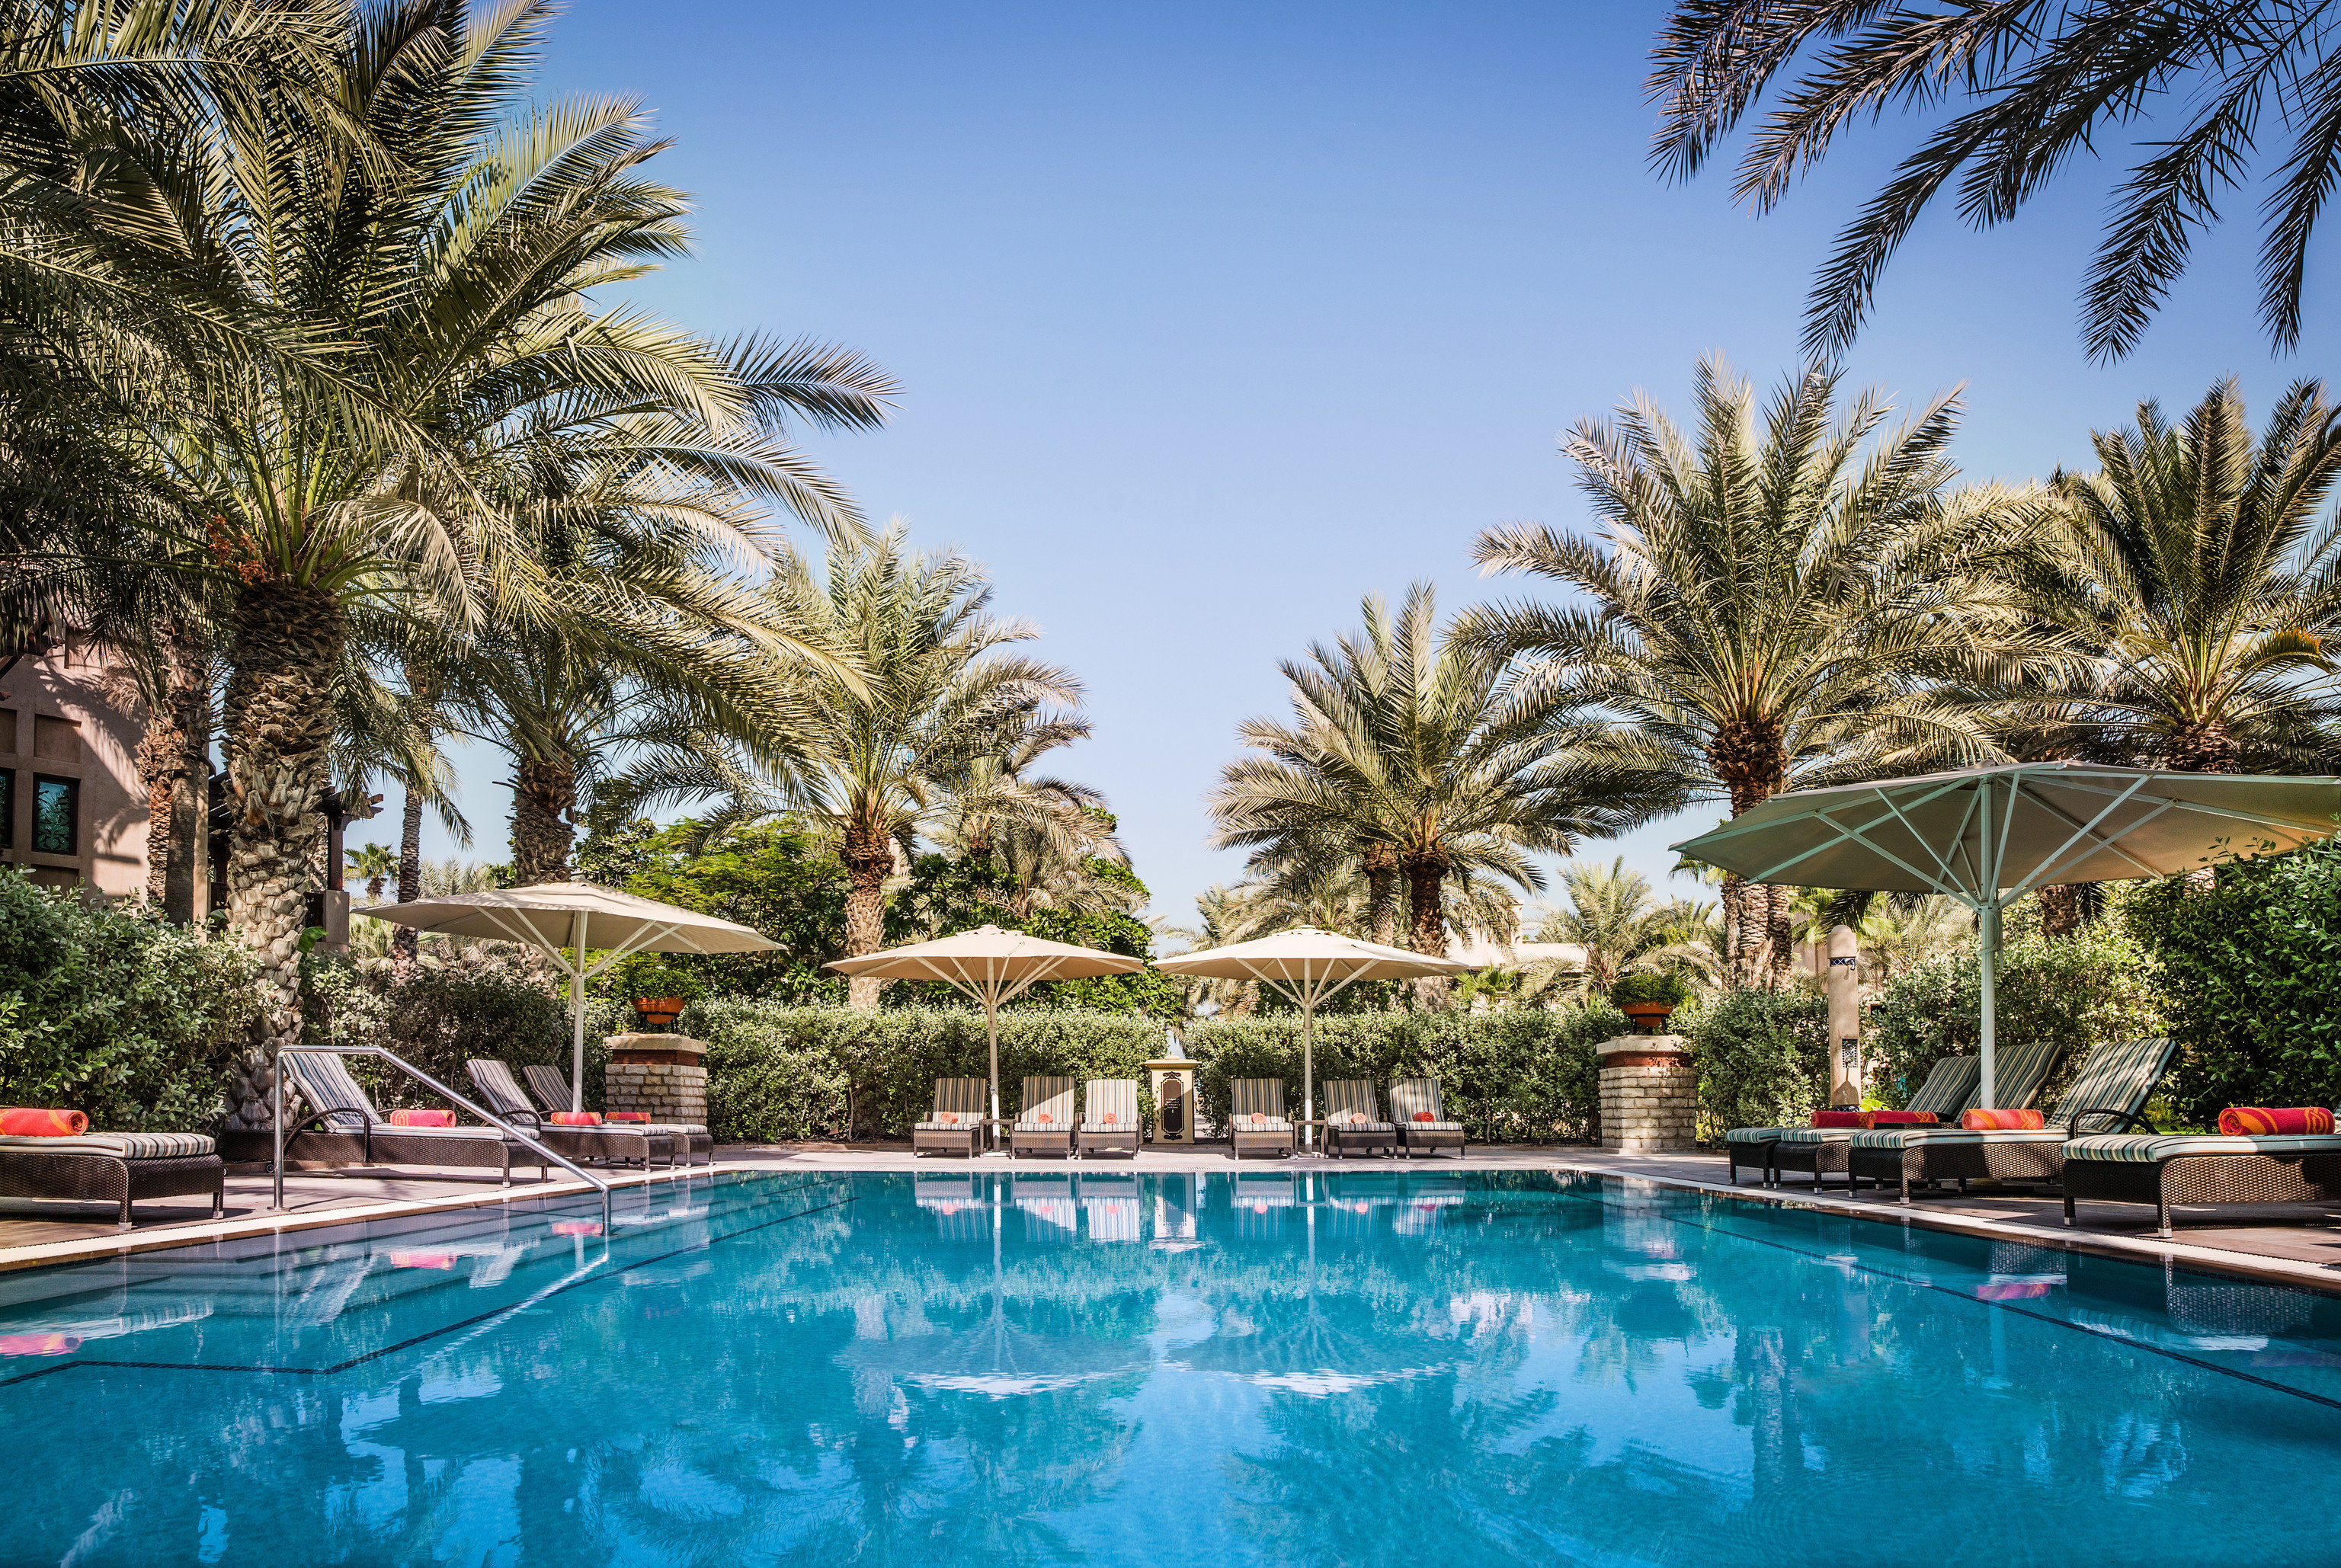 Dubai Hotels Luxury Travel Middle East Resort swimming pool property palm tree arecales tree water leisure real estate plant estate Villa sky vacation hotel resort town tropics hacienda tourism